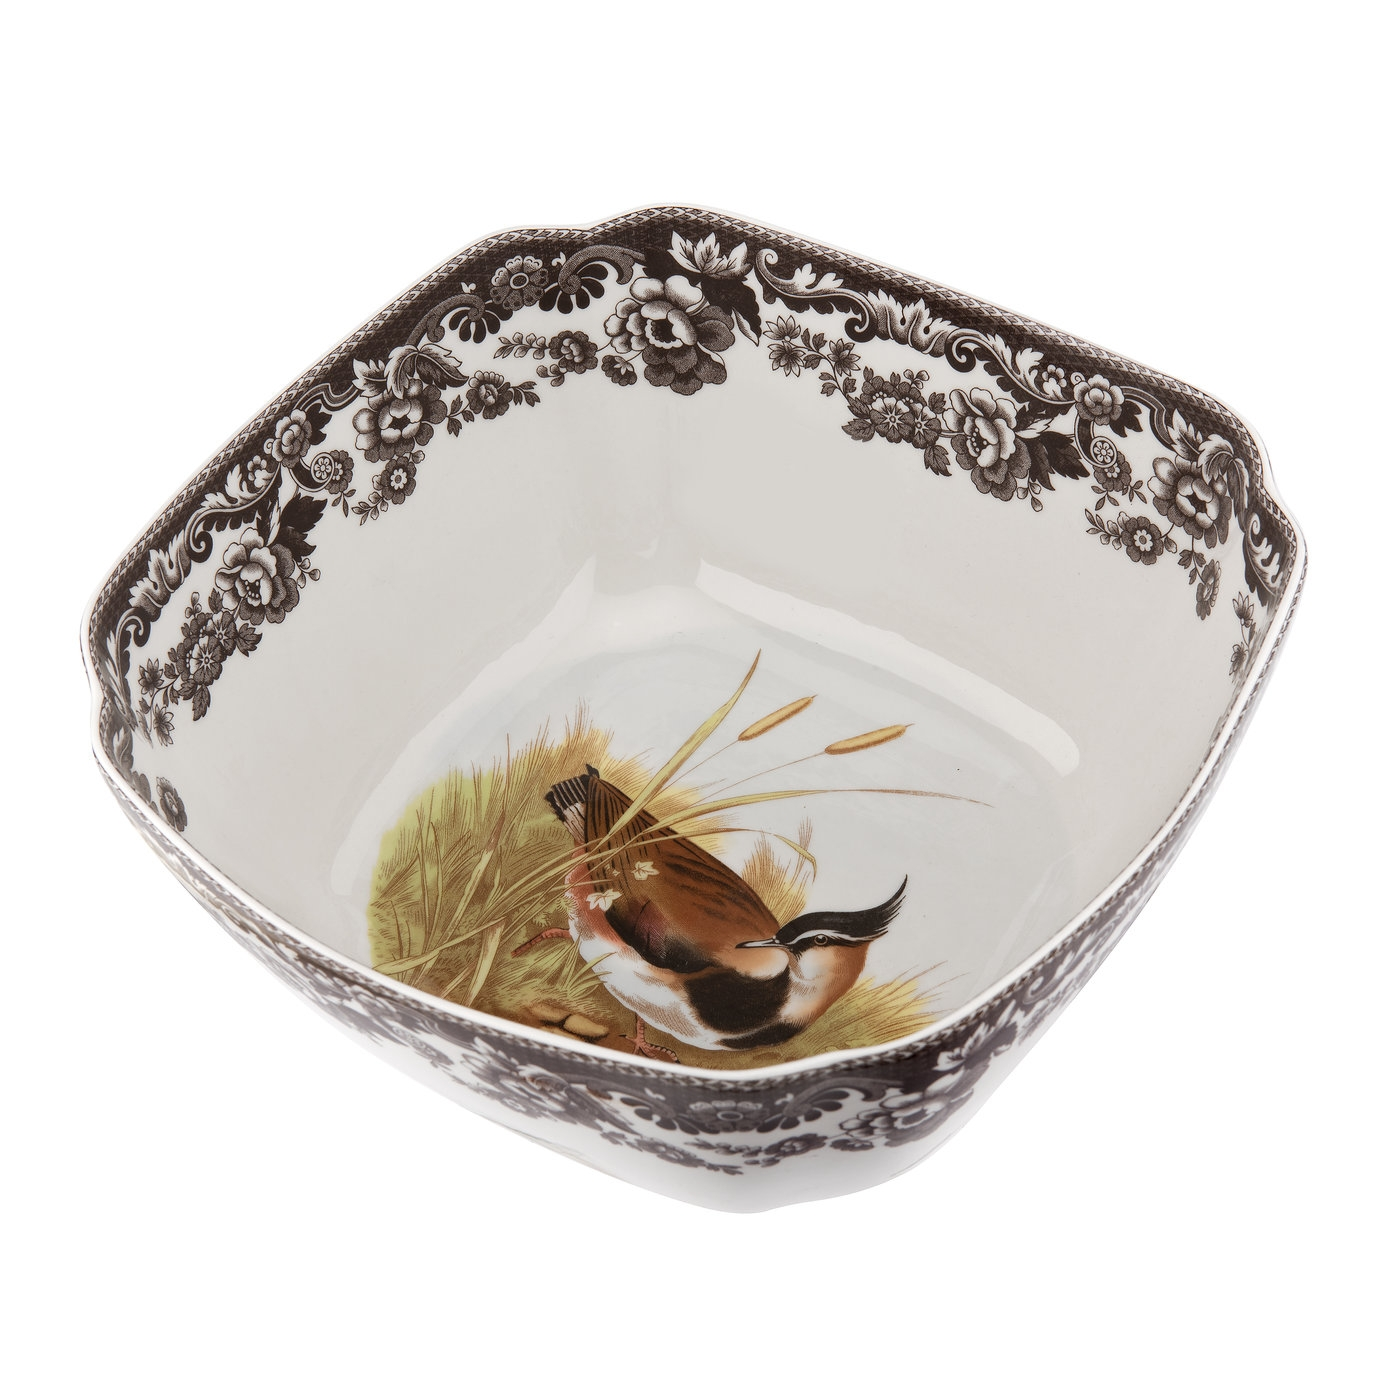 Spode Woodland Square Bowl (Quail/Lapwing) image number 0